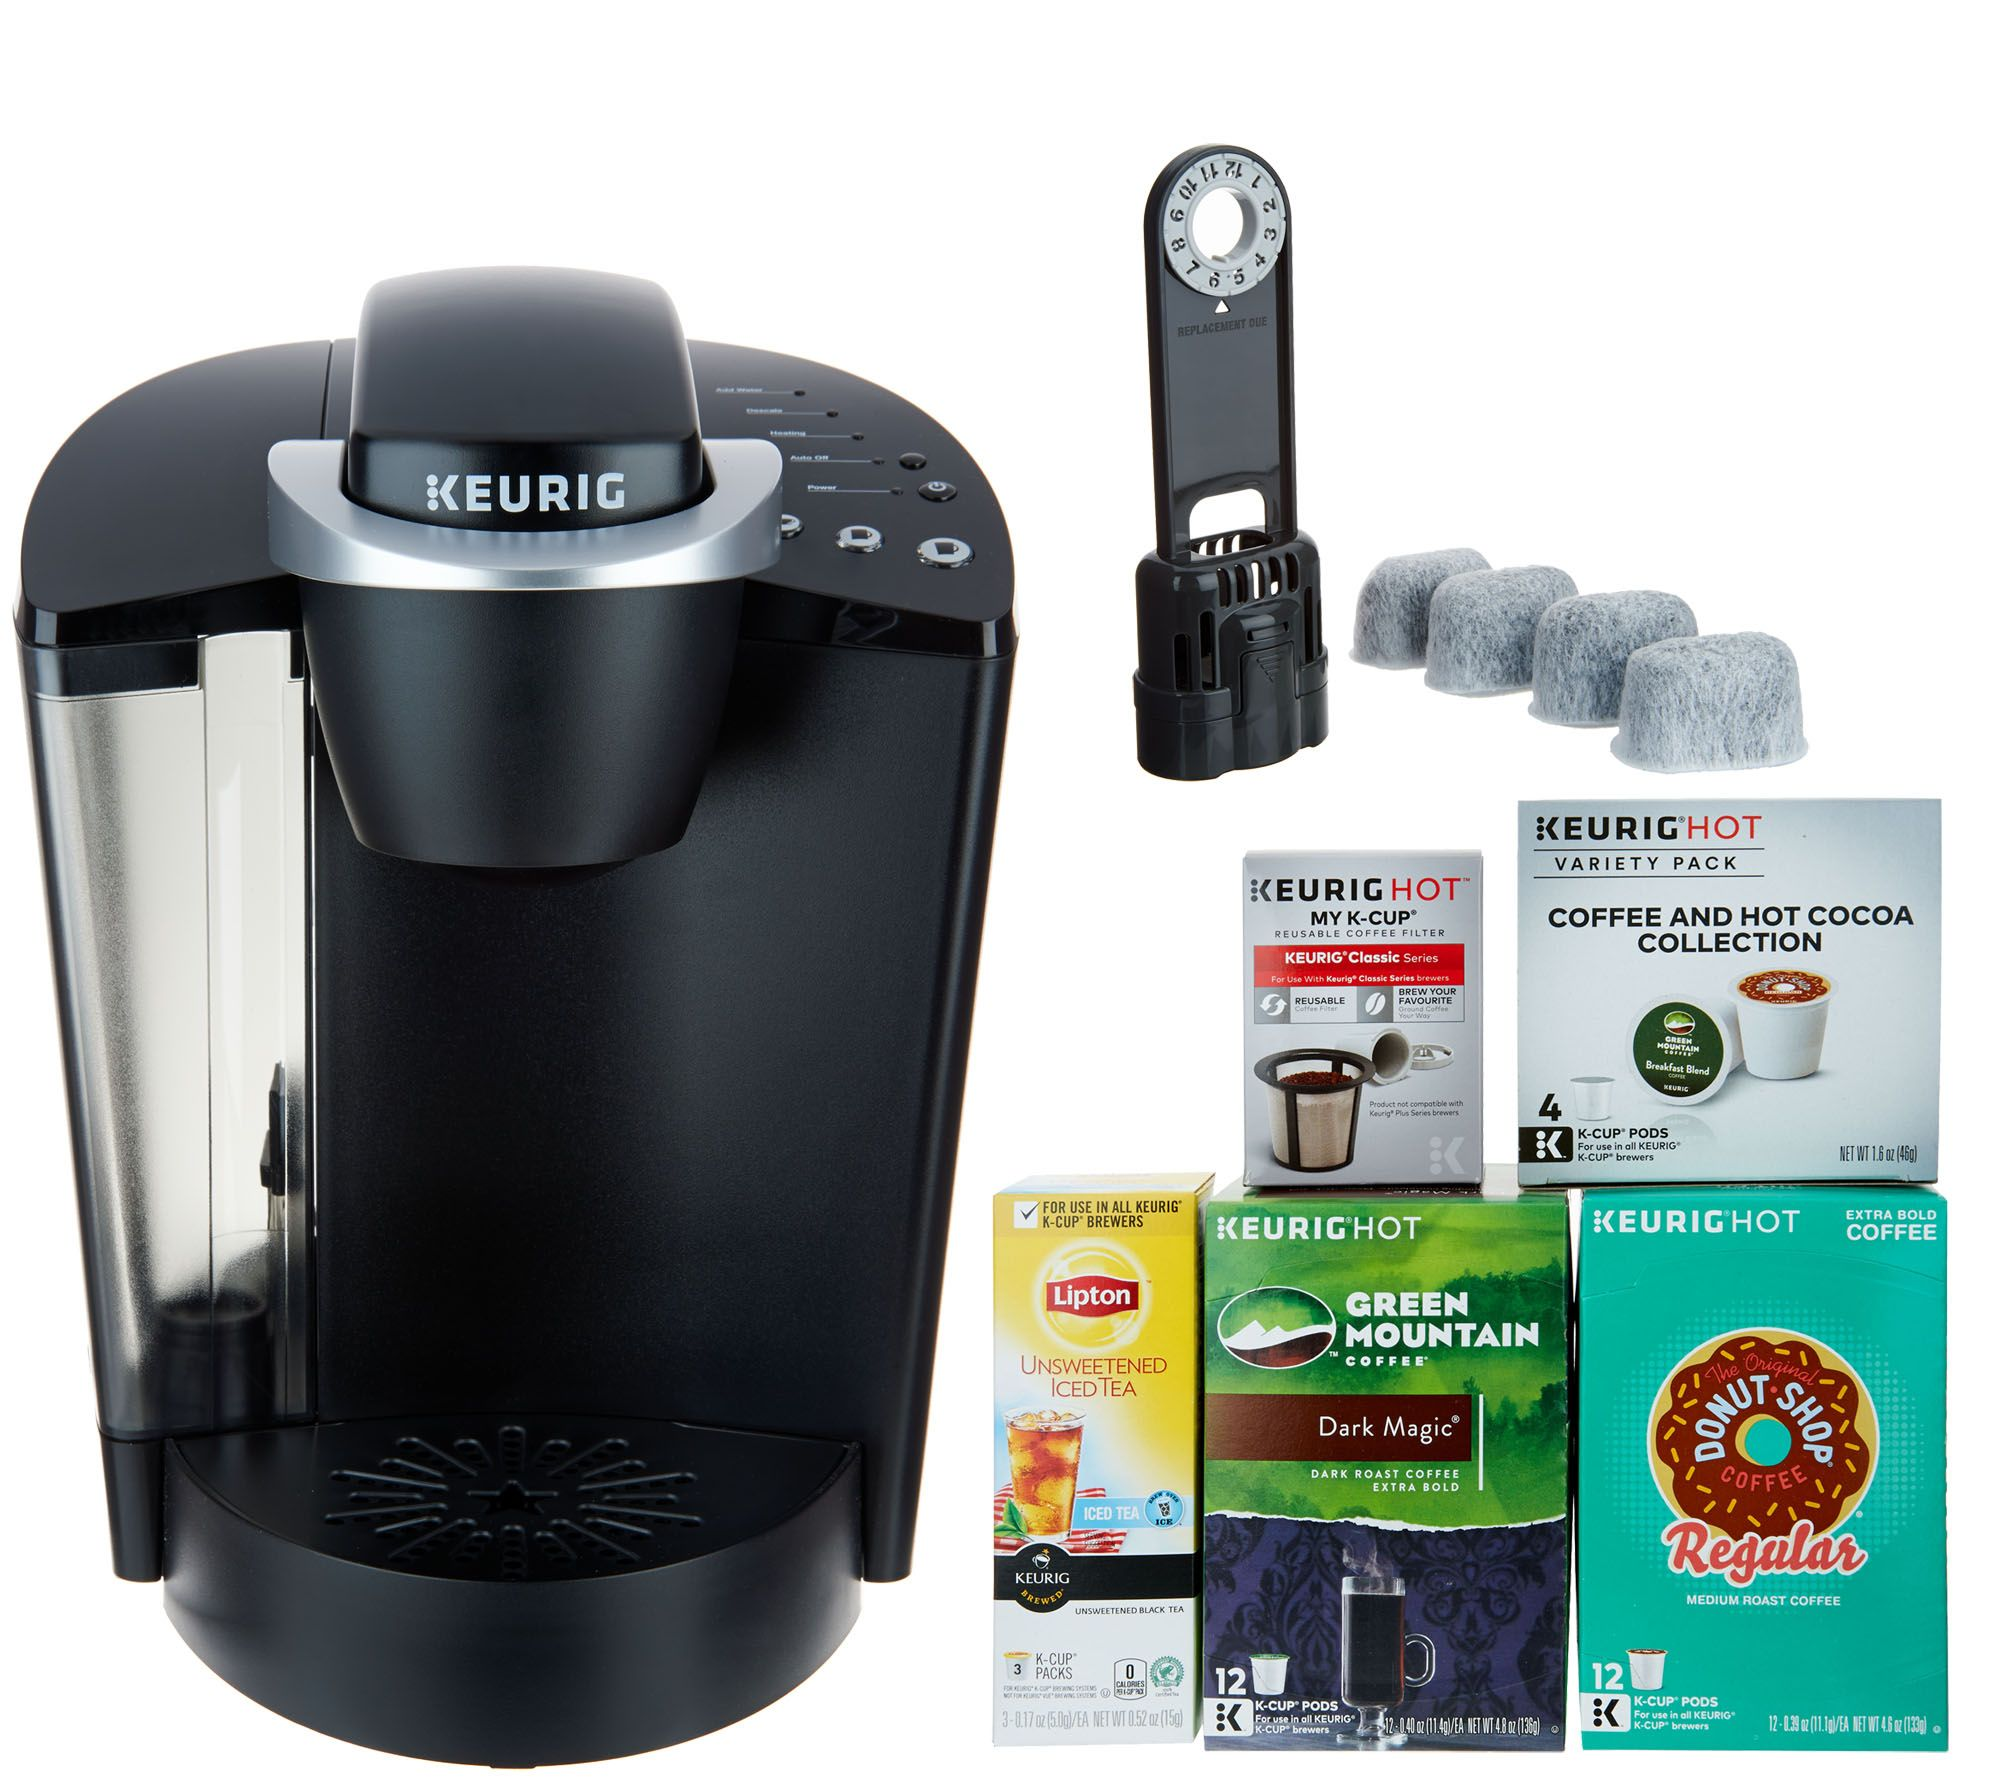 Keurig K55 Coffee Maker with My K-Cup, 31 K-Cup Pods & Water ...